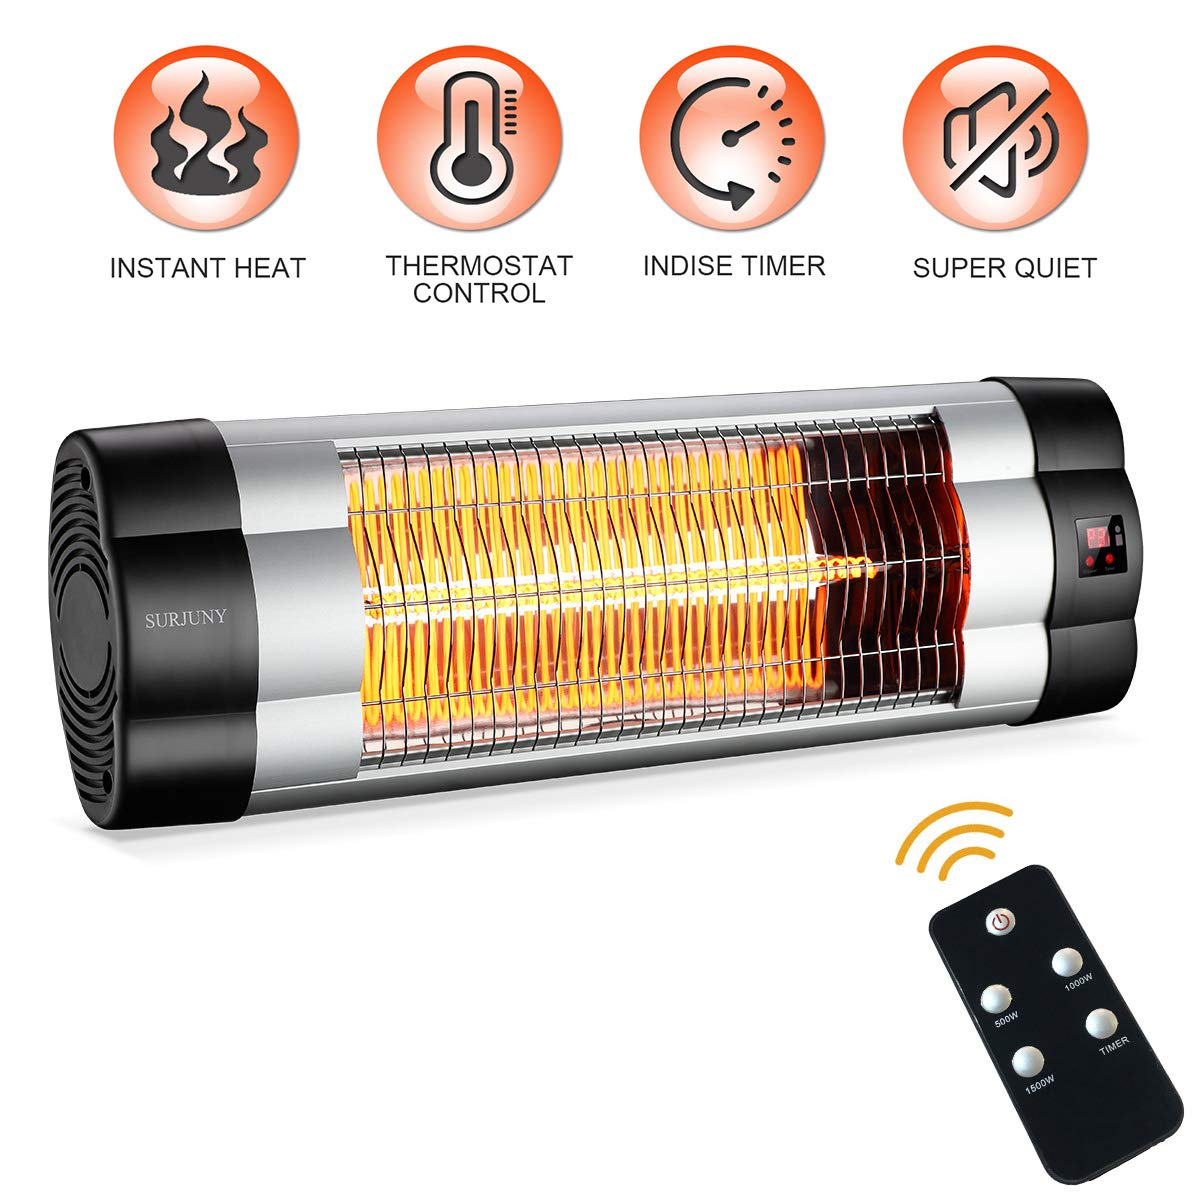 SURJUNY Patio Heater, Electric Wall-Mounted Outdoor Heater with LCD Display, Indoor/Outdoor Infrared Heater, 1500W Adjustable Thermostat, 3 Seconds Instant Warm, Waterproof IP34 Rated, W01 by SURJUNY